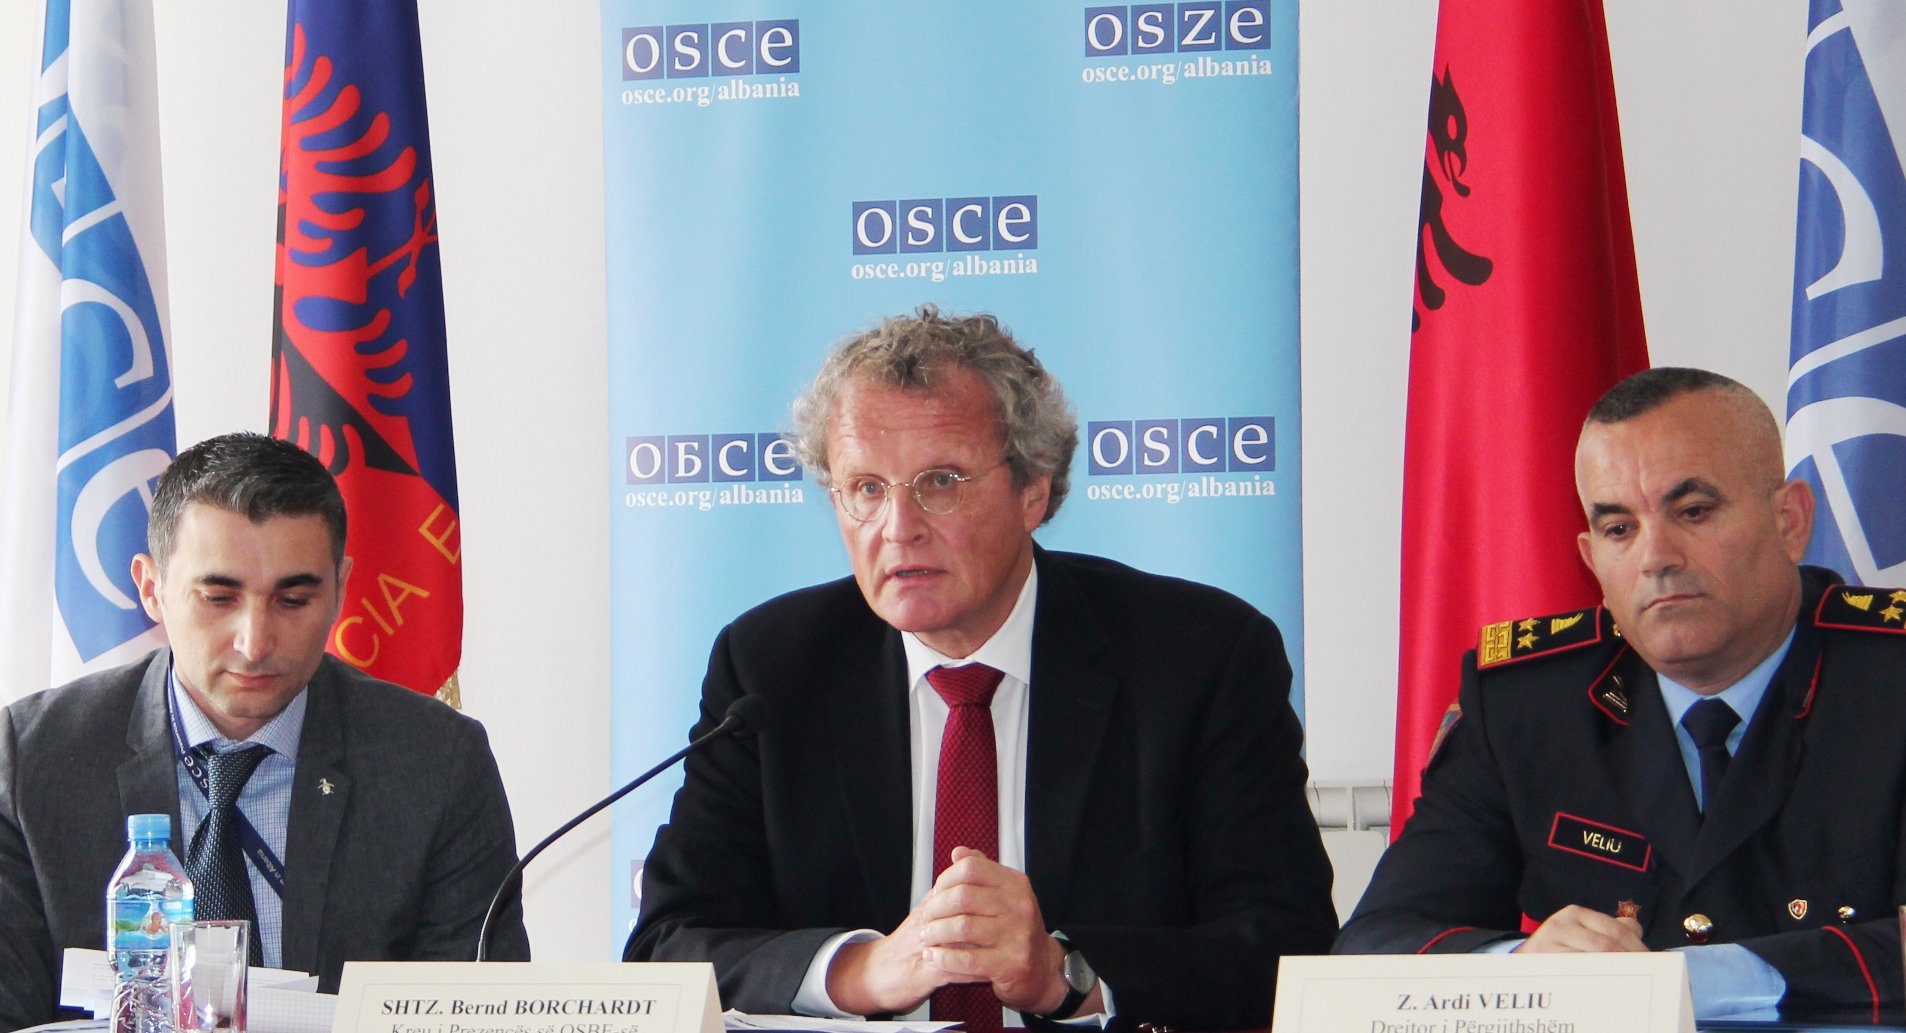 The Endless Presence of the OSCE